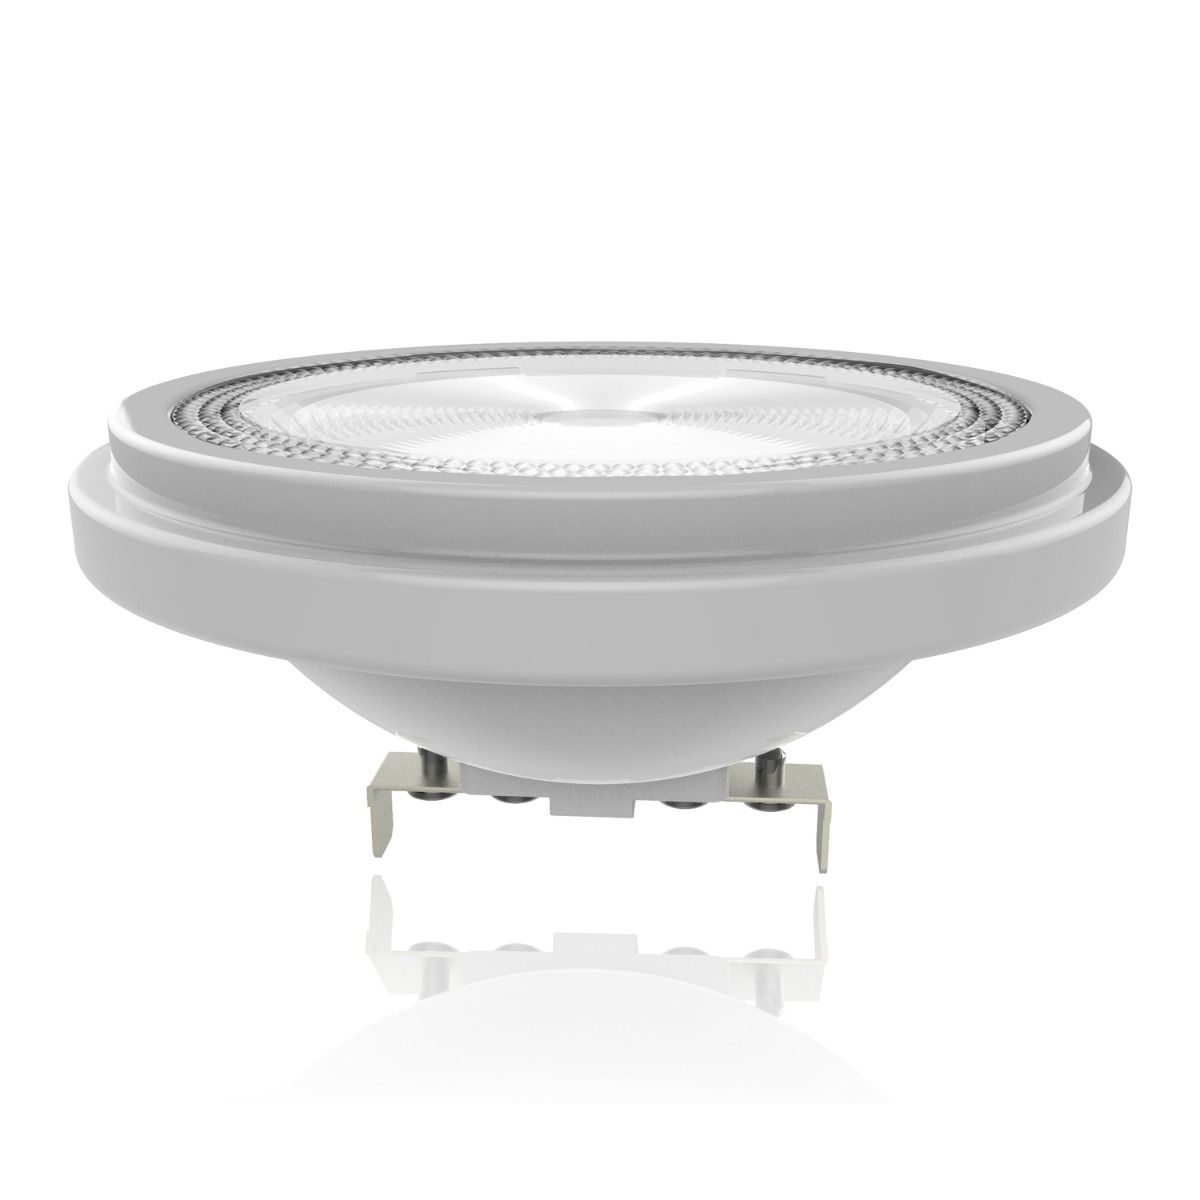 Noxion Lucent LED Spot AR111 G53 12V 11.5W 930 40D | Dimmable - Highest Colour Rendering - Replacer for 75W